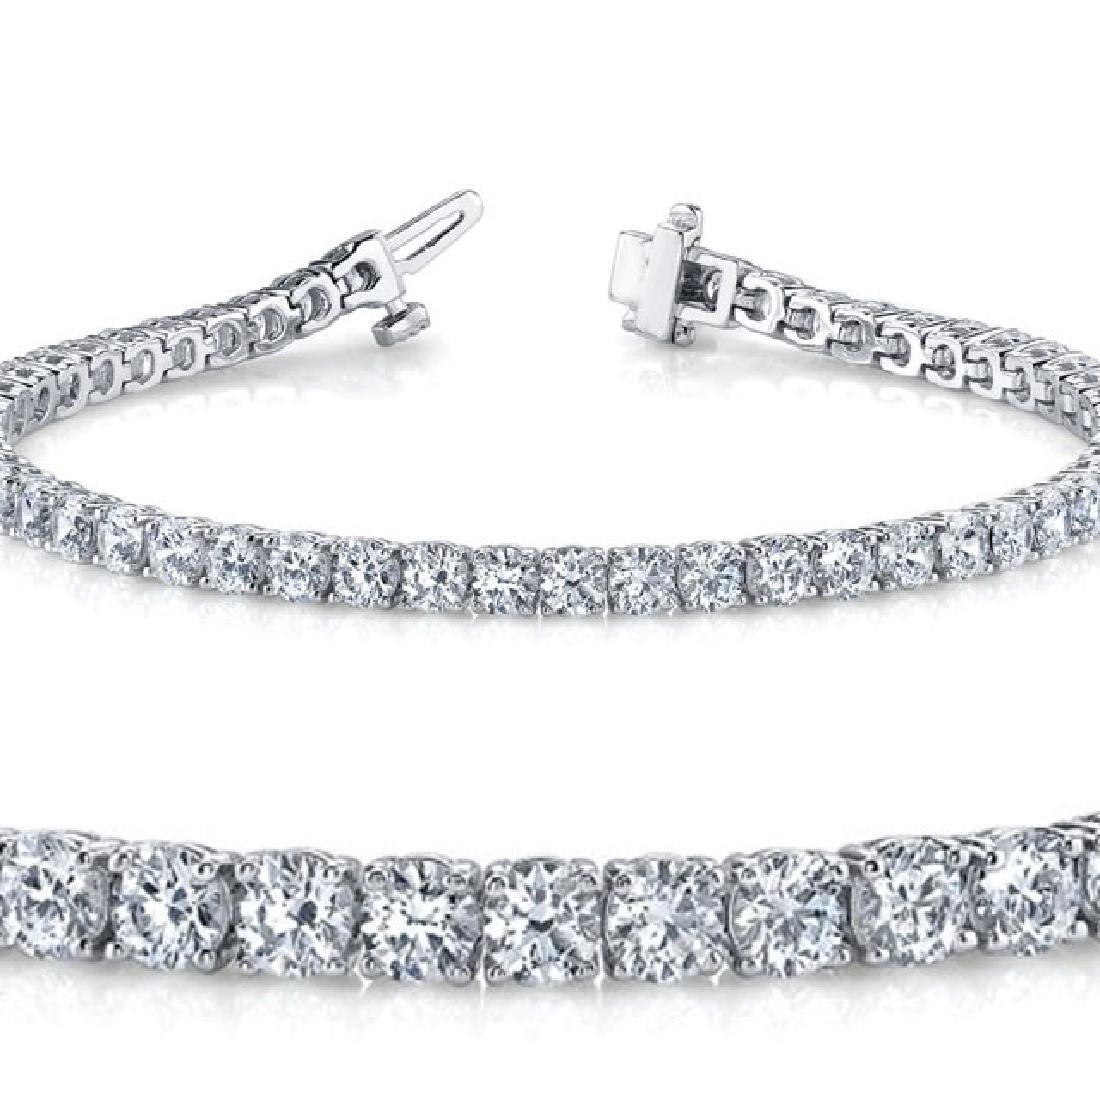 Natural 4ct VS-SI Diamond Tennis Bracelet 14K White